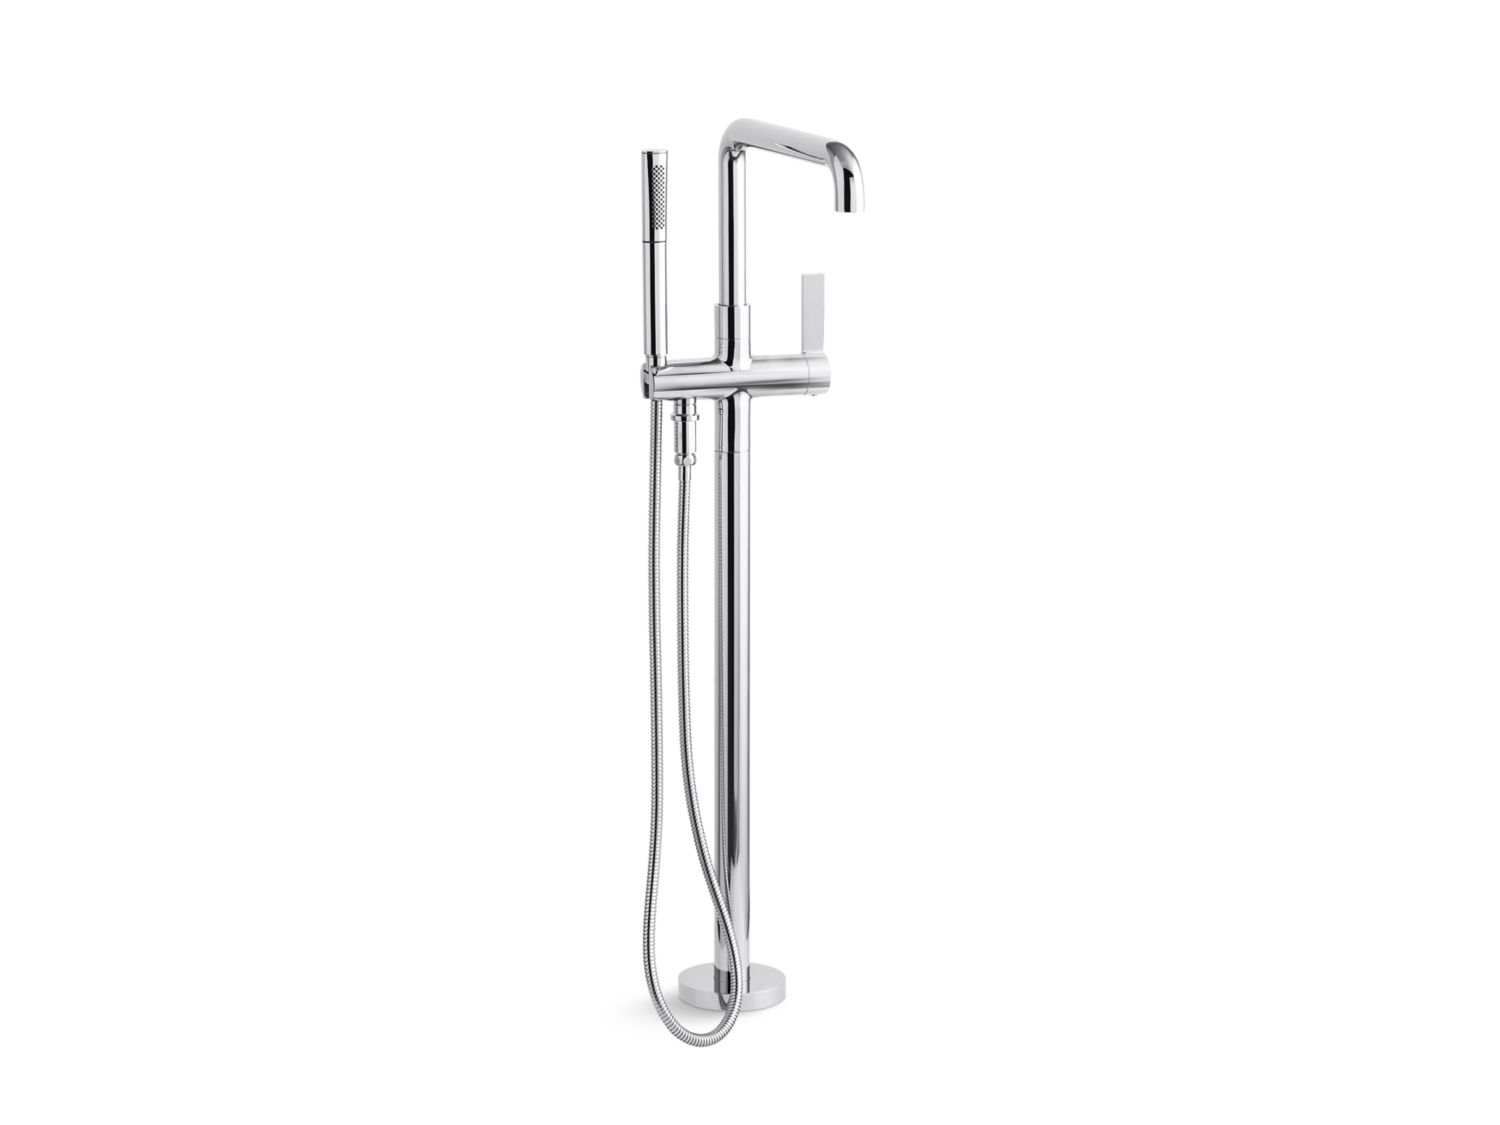 One Floor-mount Bath Filler, Less Handshower | P24408-00 | Bath ...